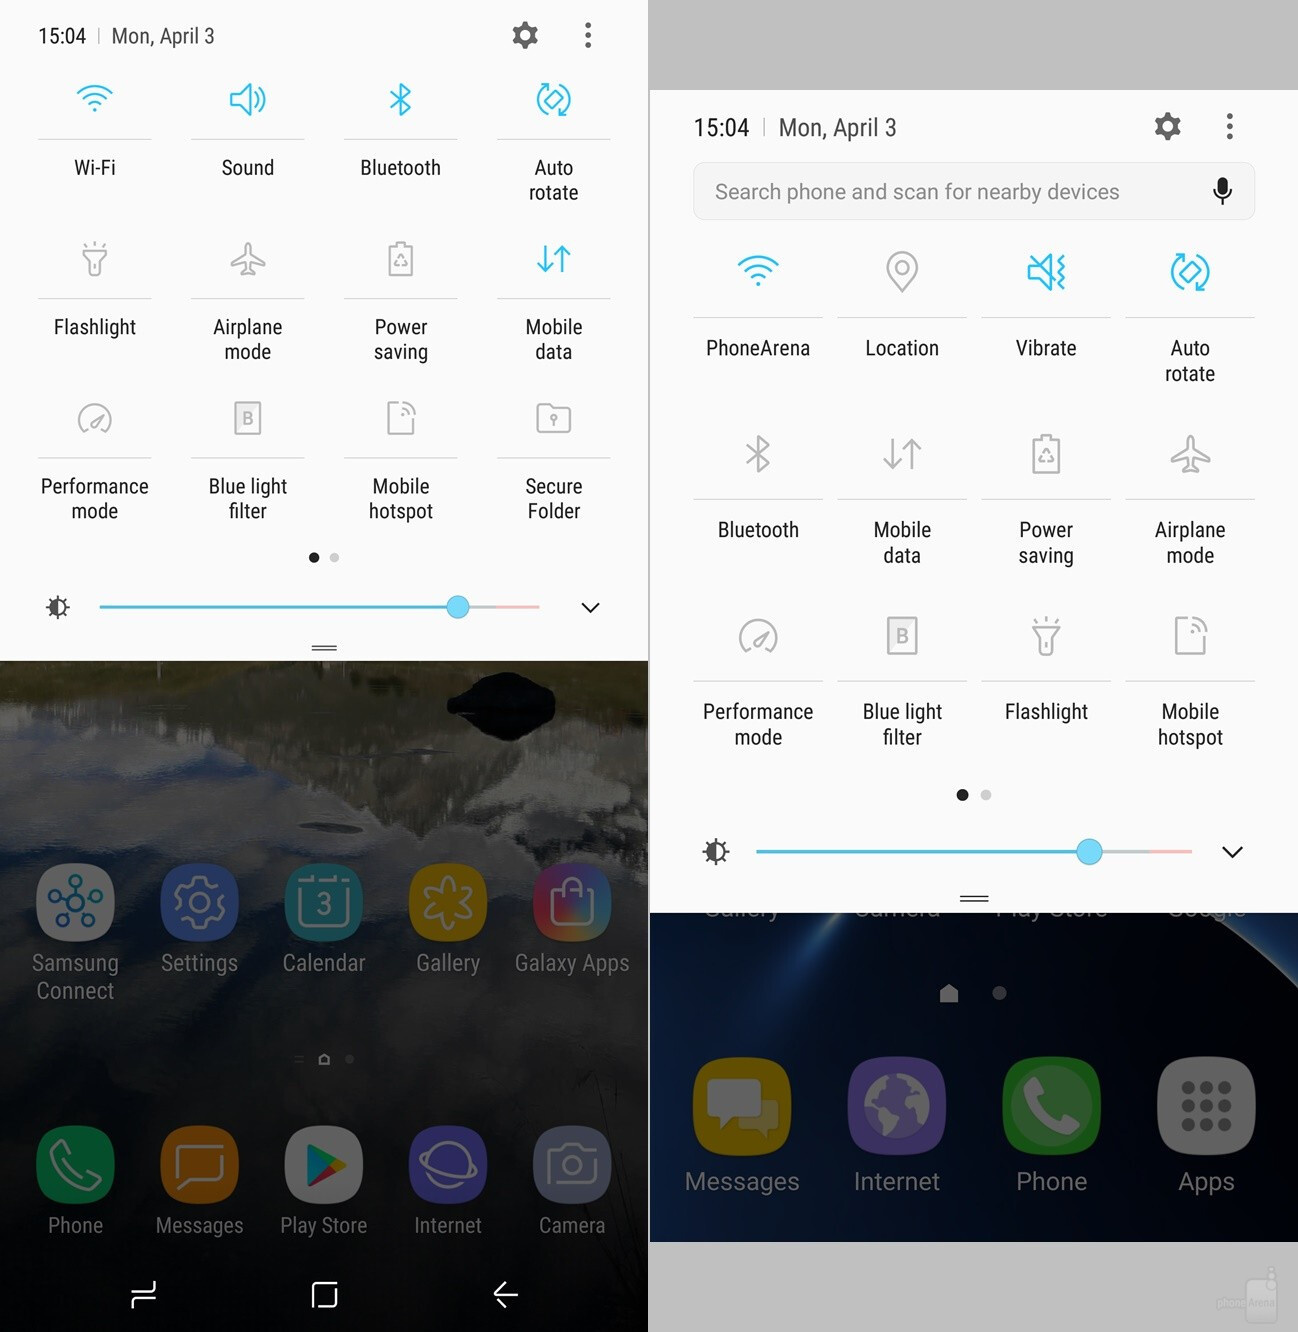 Galaxy S8+ vs Galaxy S7 edge interface comparison: here's